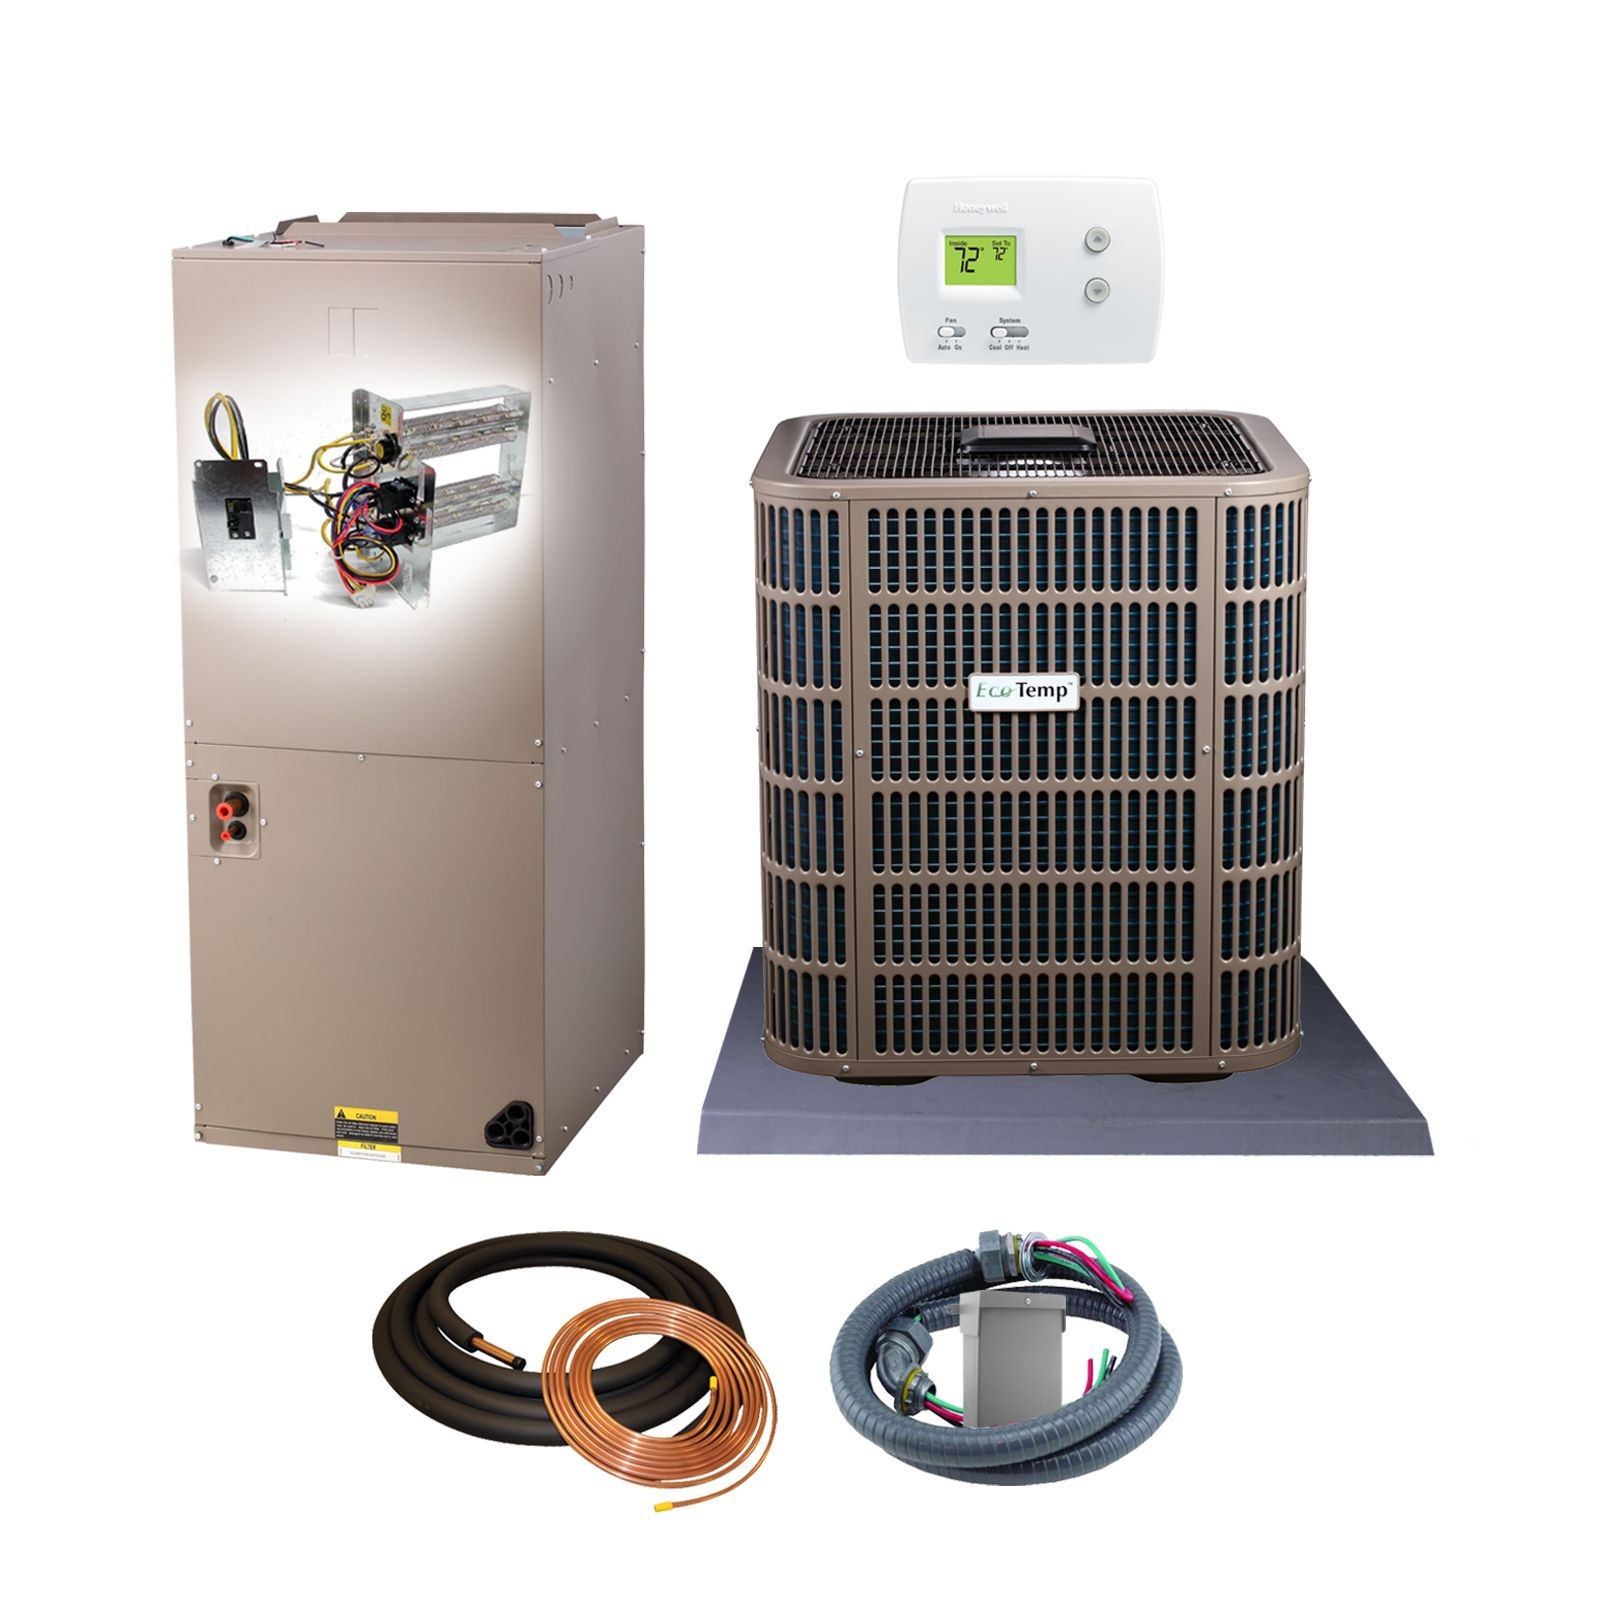 EcoTemp (AHRI 8270076) 5 Ton, 17.5 SEER/11.2 EER Monarch Series, Heat Pump Split System and Install Kit